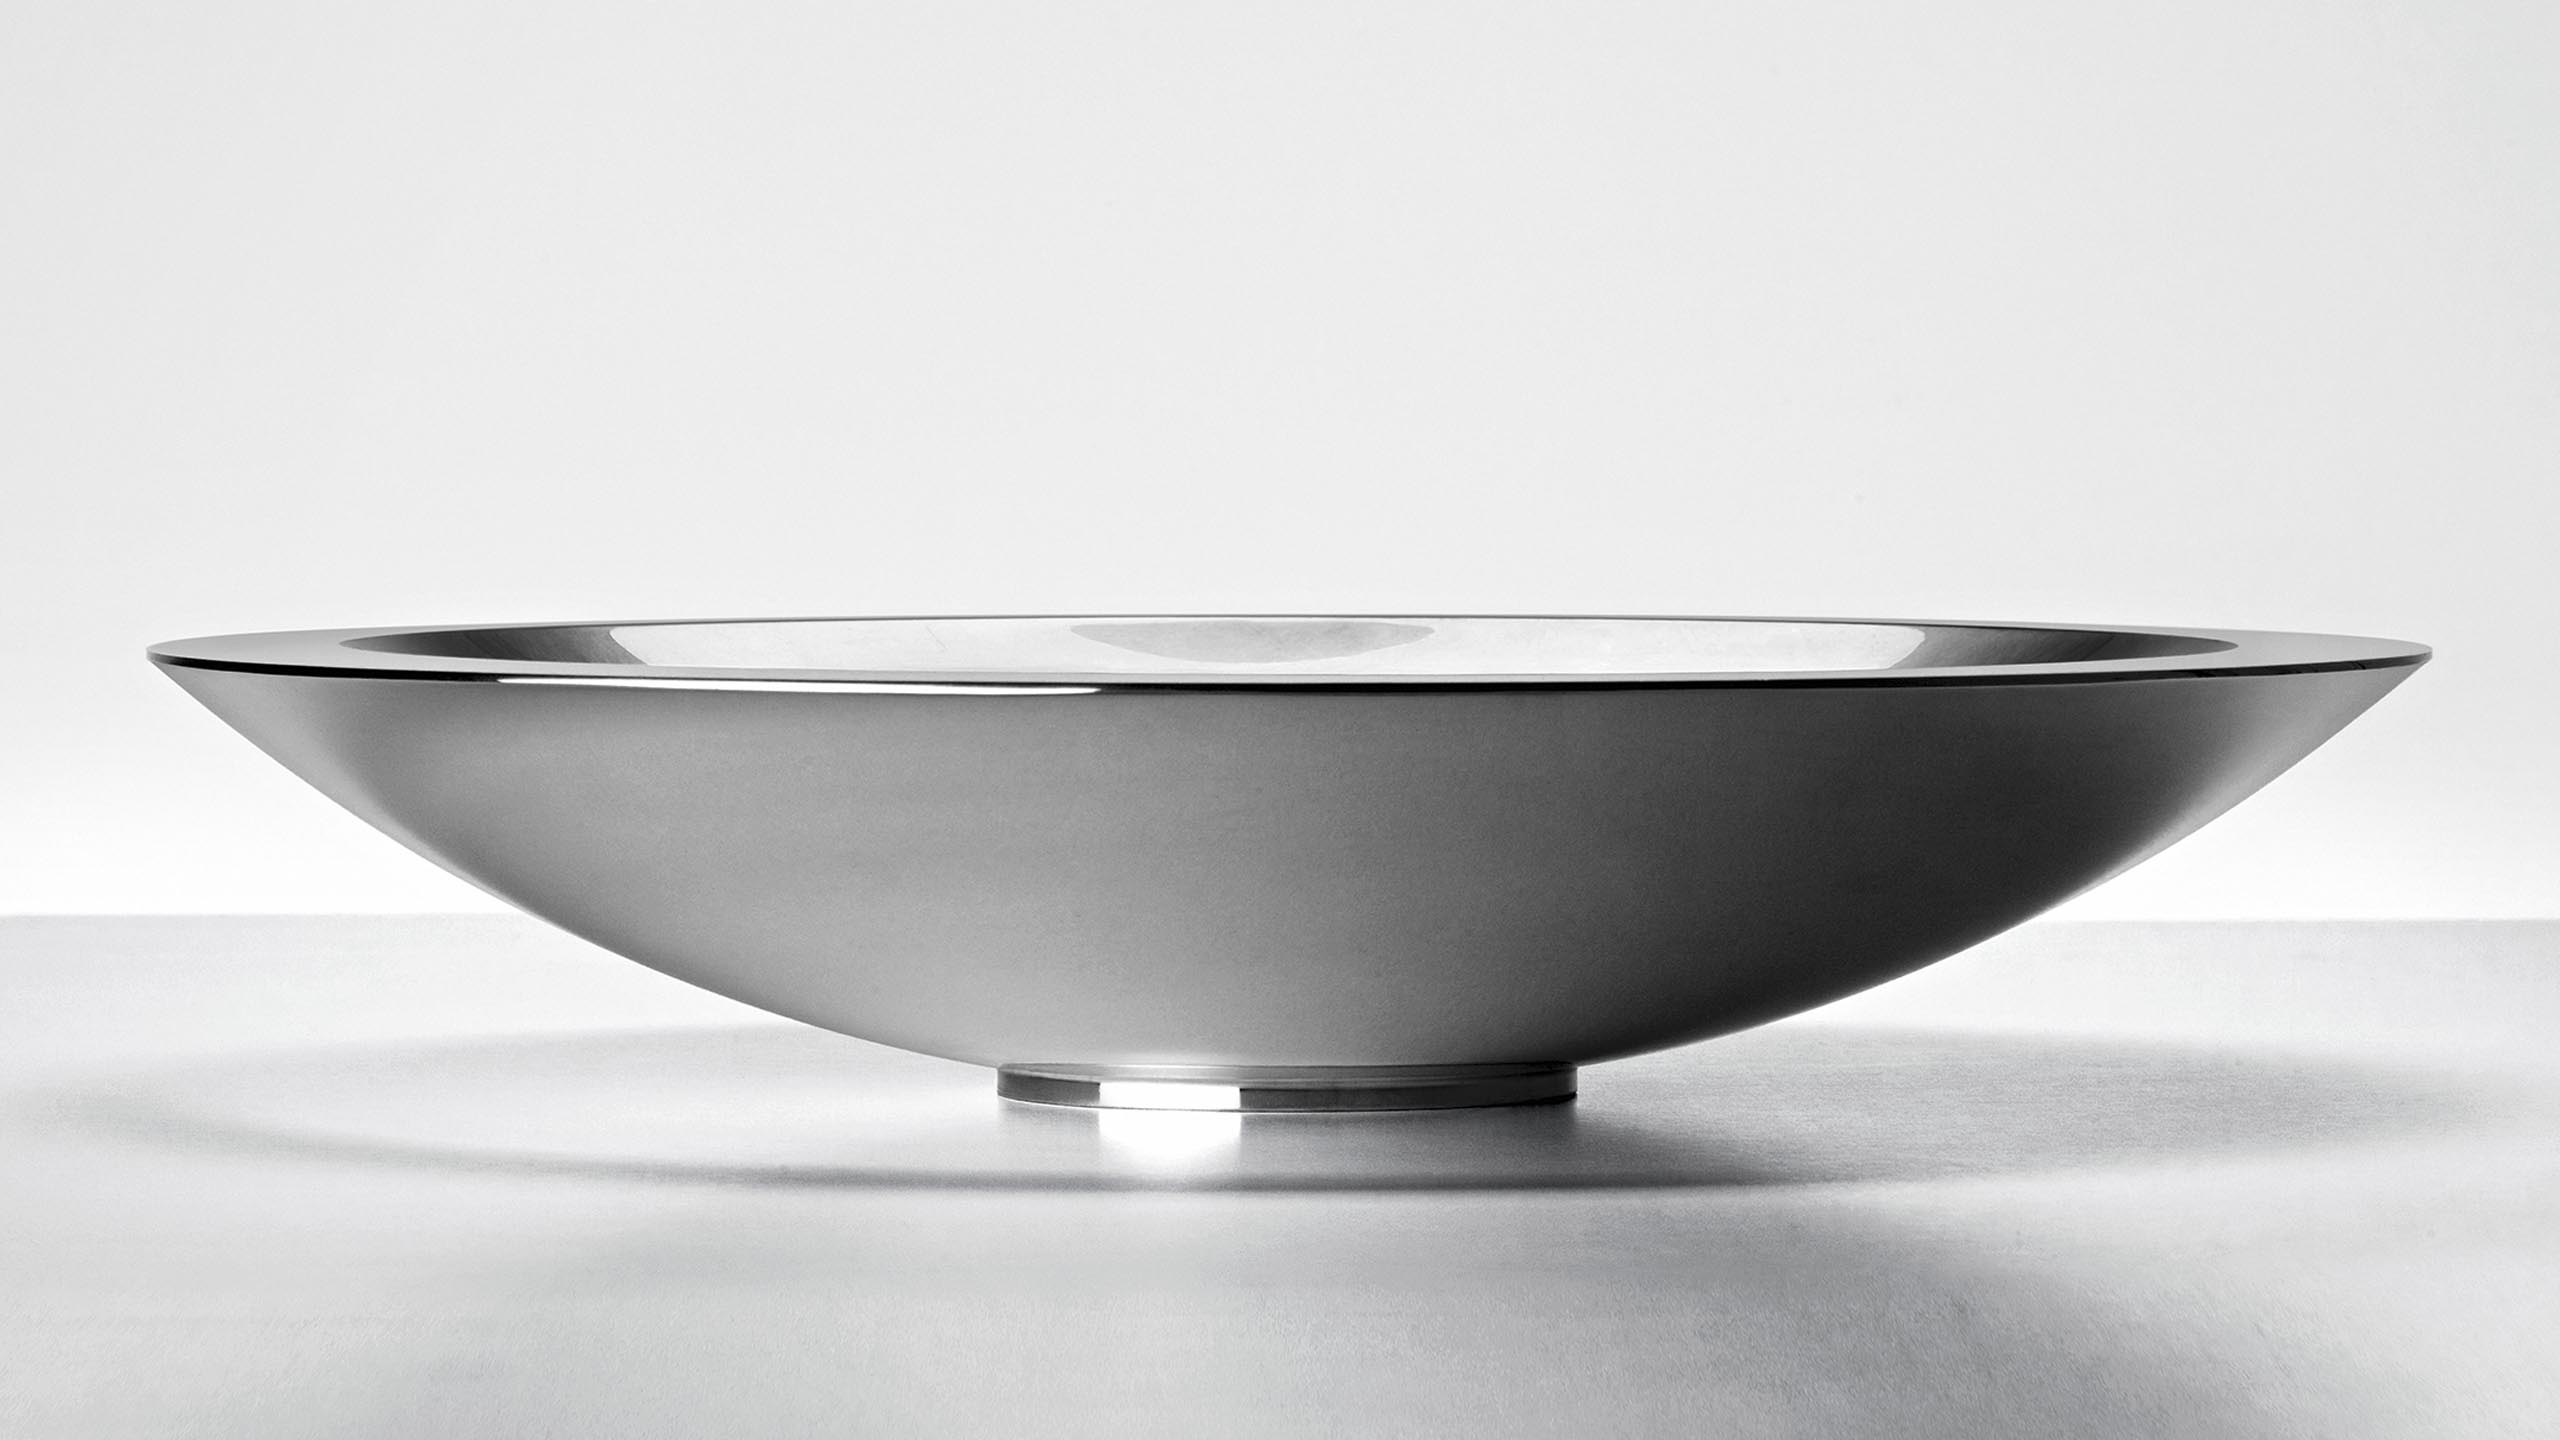 6 kilo silver bowl by Robbe & Berking